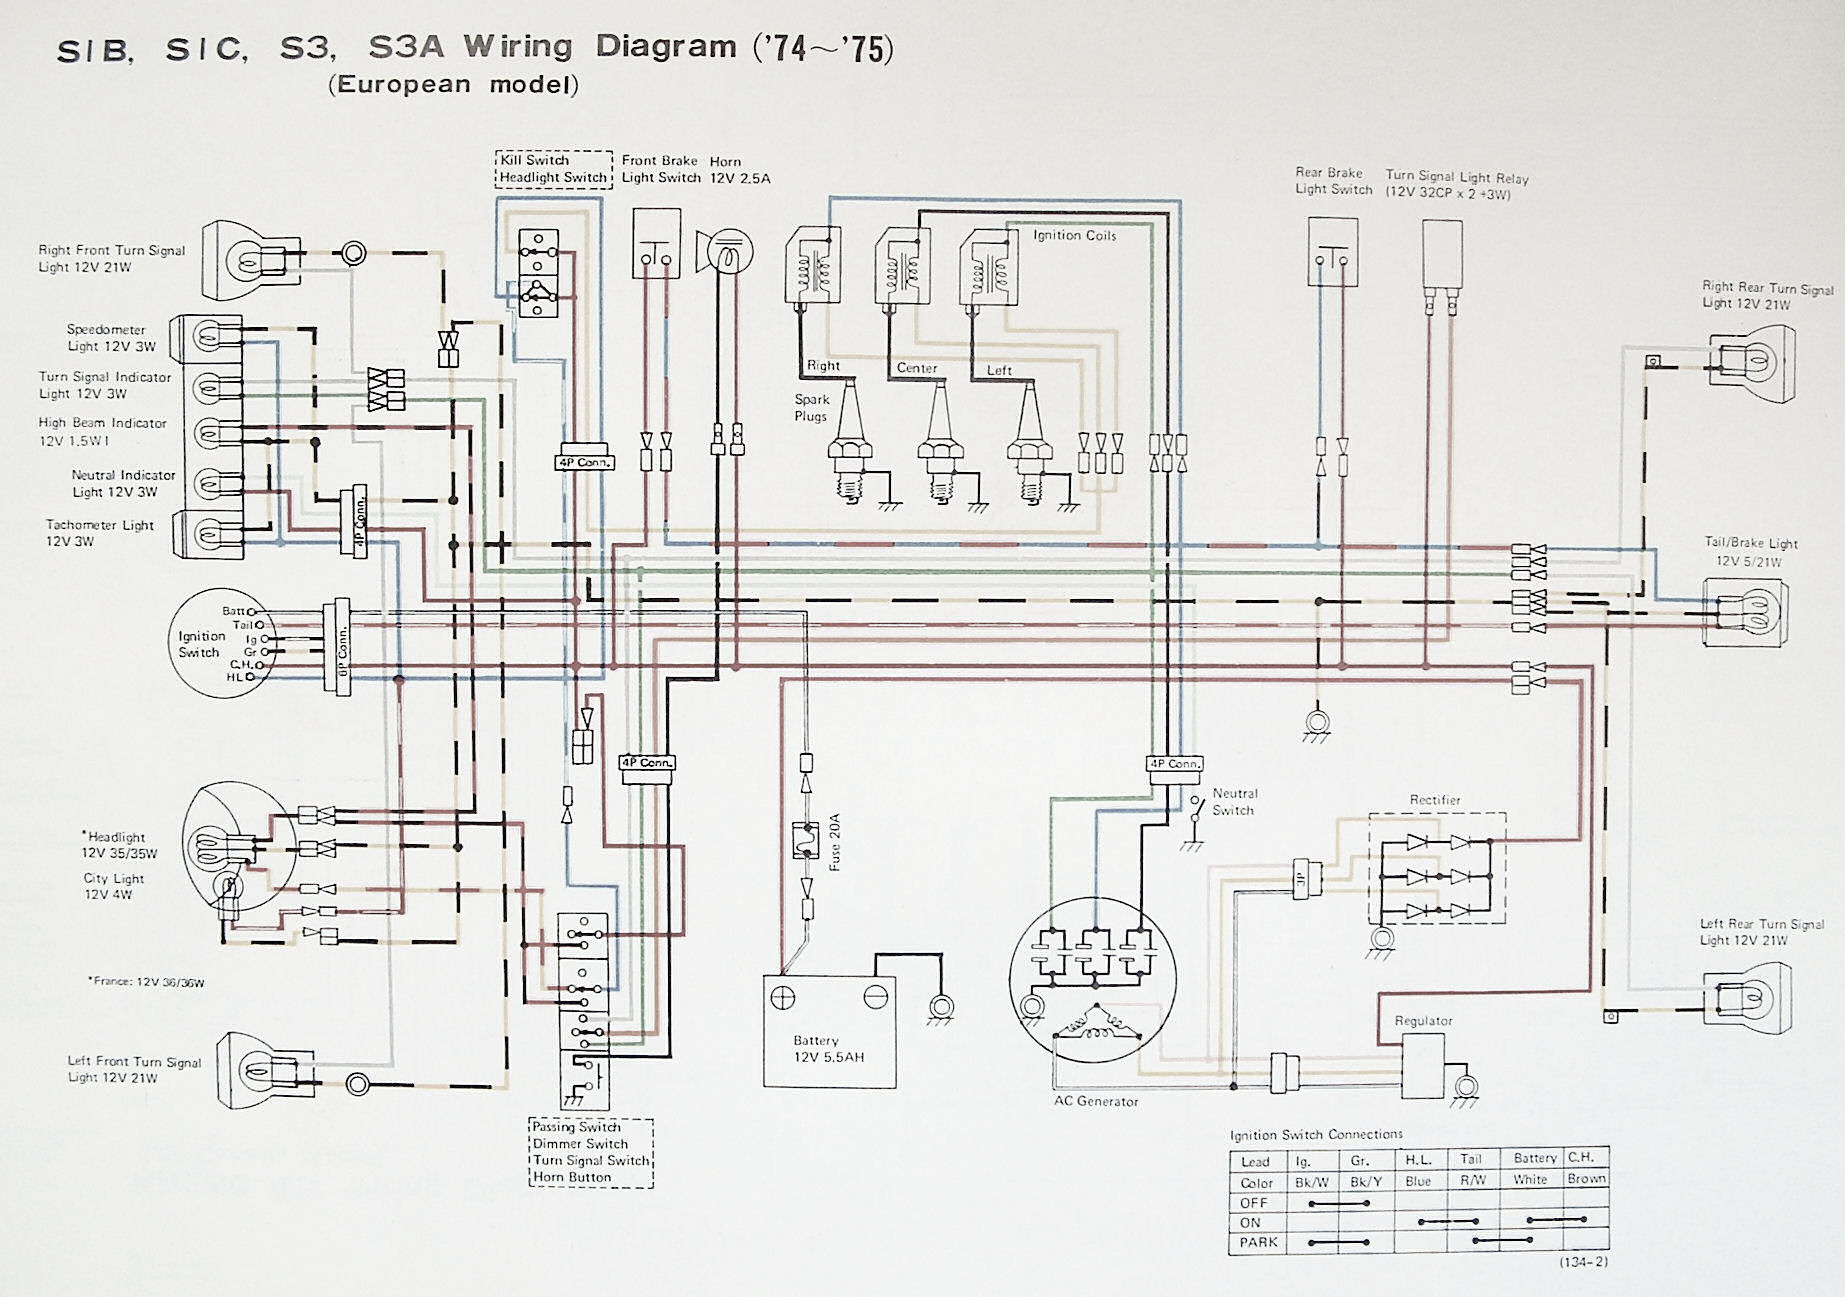 Kawasaki S3 Wiring Diagram Schematics Superior Broom Diagrams List Of Schematic Circuit U2022 For 1995 Bayou 220